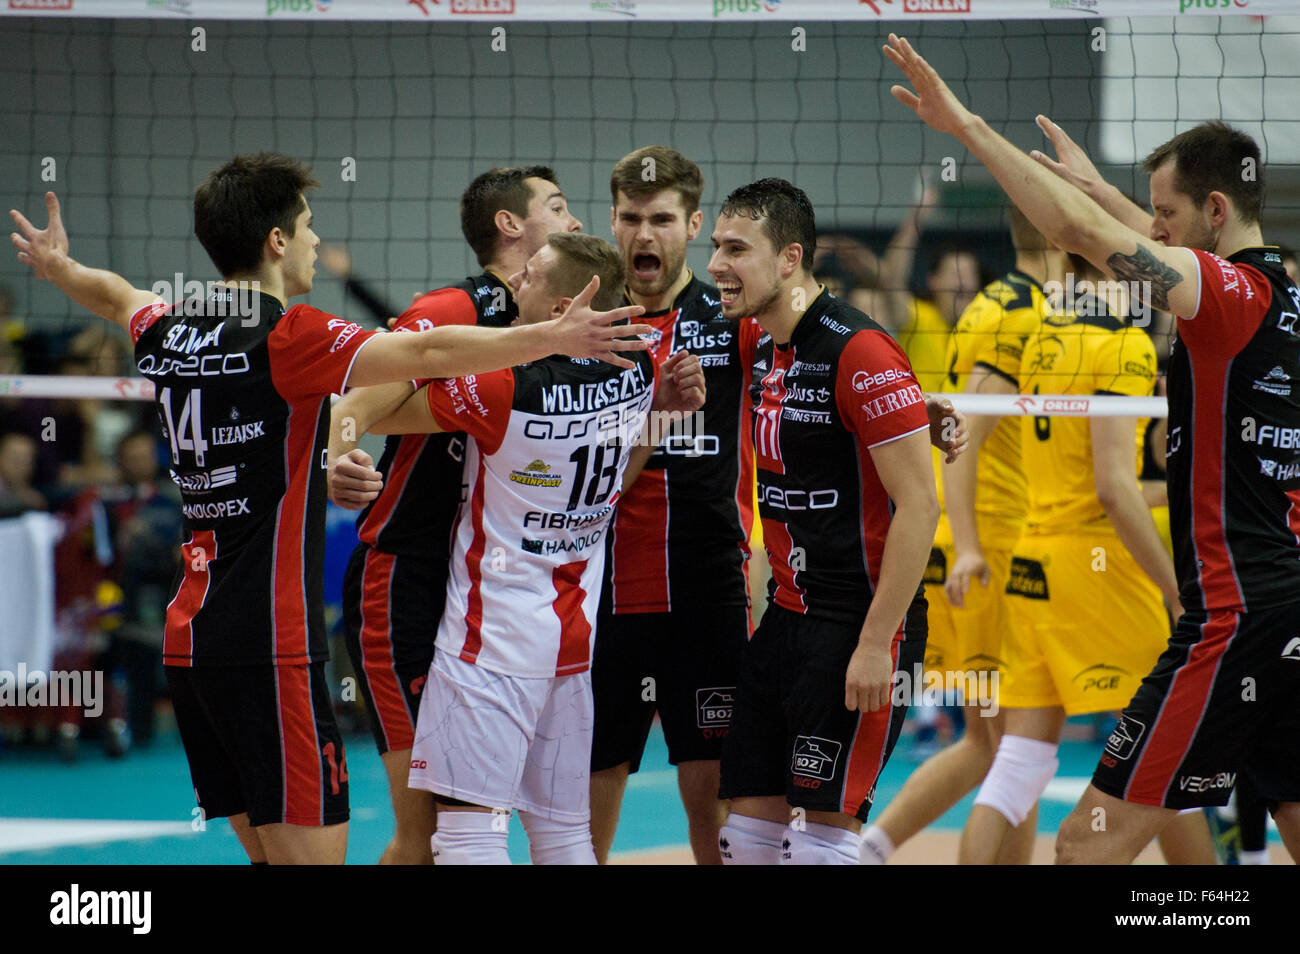 Belchatow, Poland. 11th November 2015. Team Asseco Resovia Rzeszow during game with PGE Skra Belchatow in Plus Liga - Stock Image